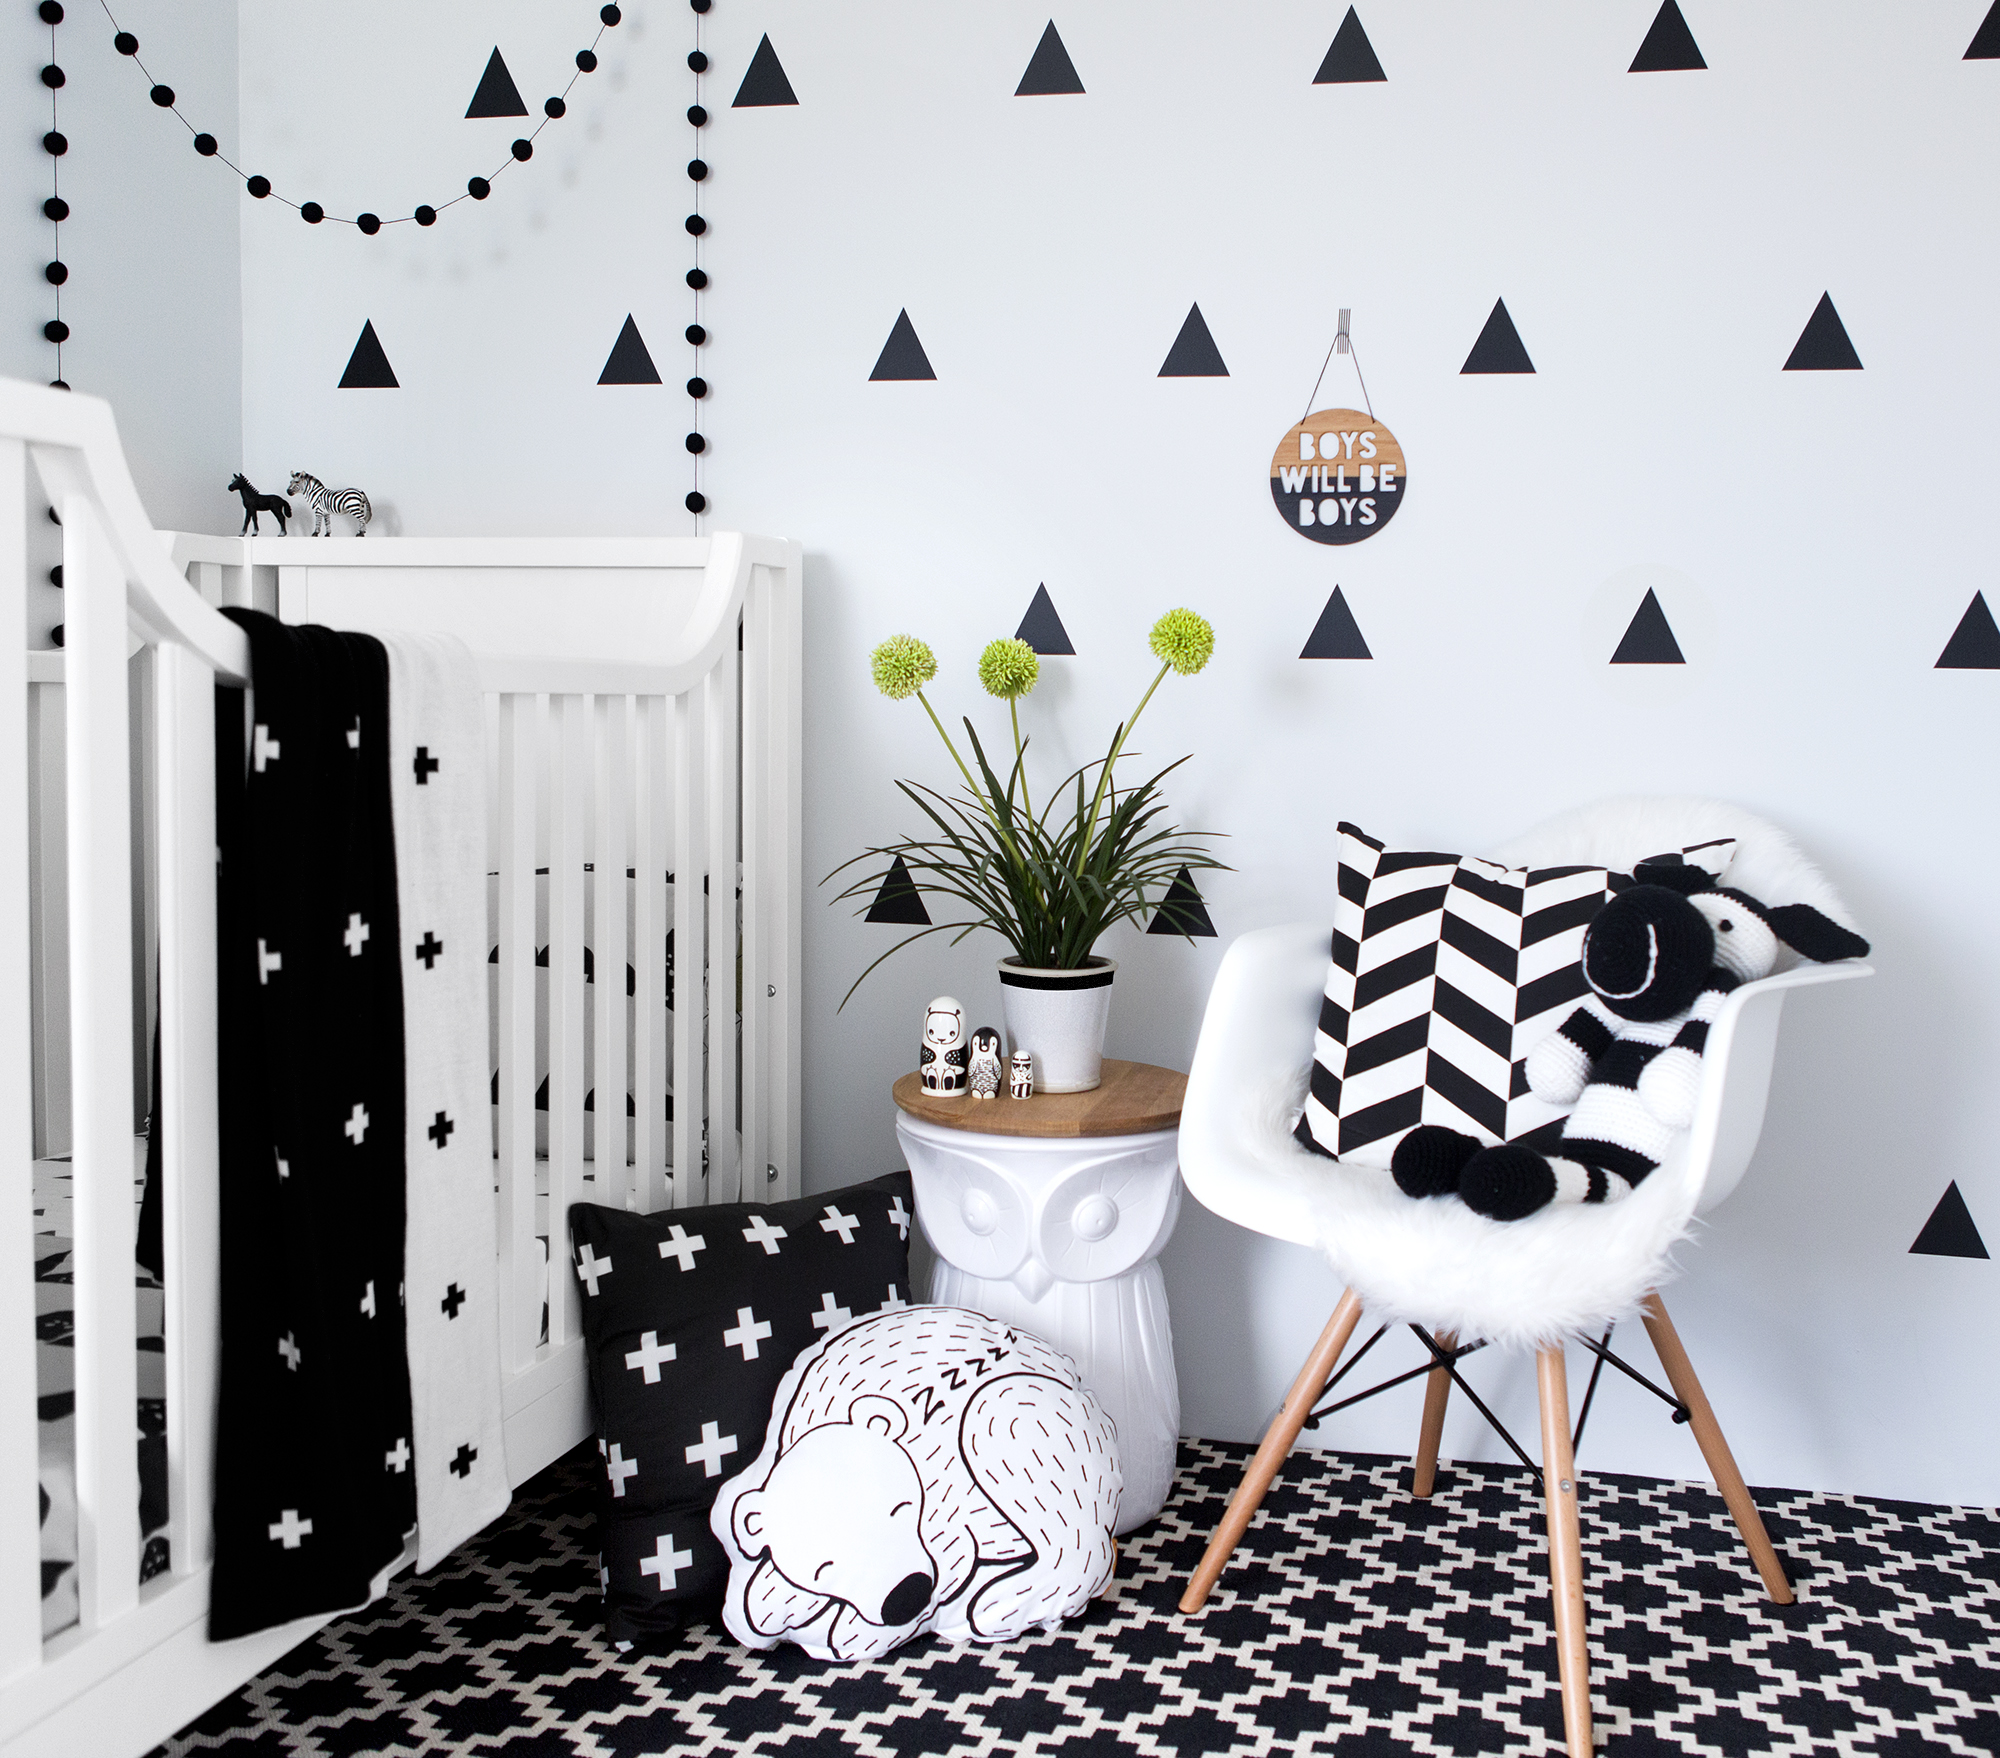 Australian Nursery Ideas With Vivid Wall Decals The